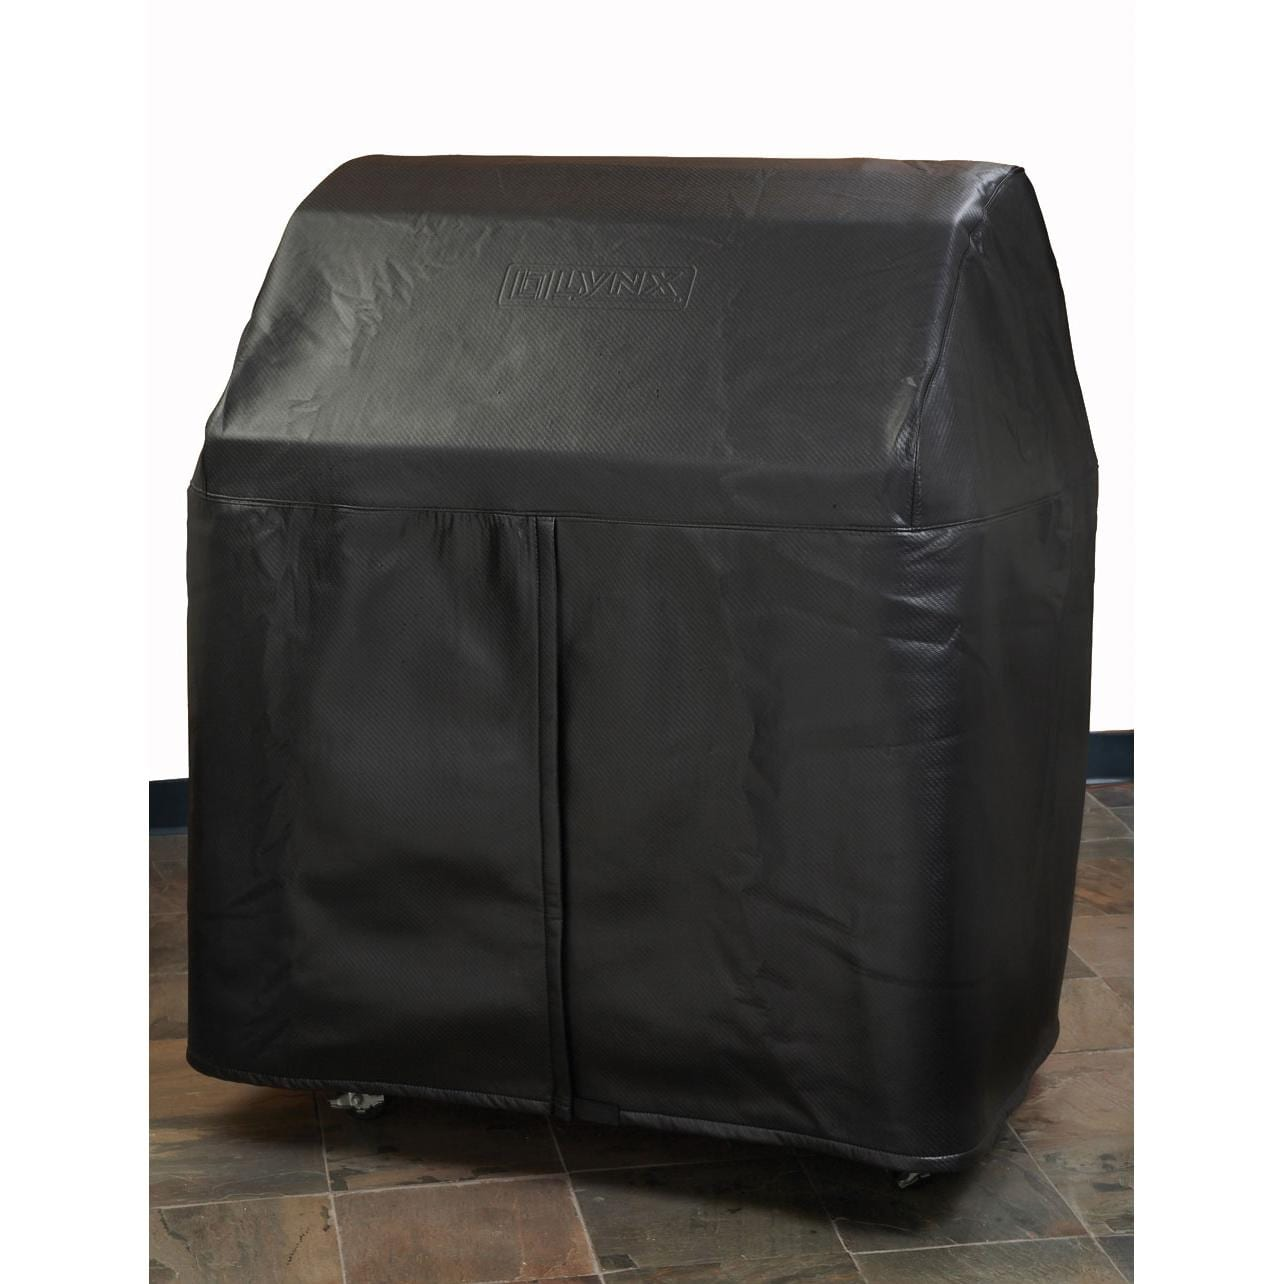 Lynx 54-Inch Professional Freestanding Gas Grill Cover